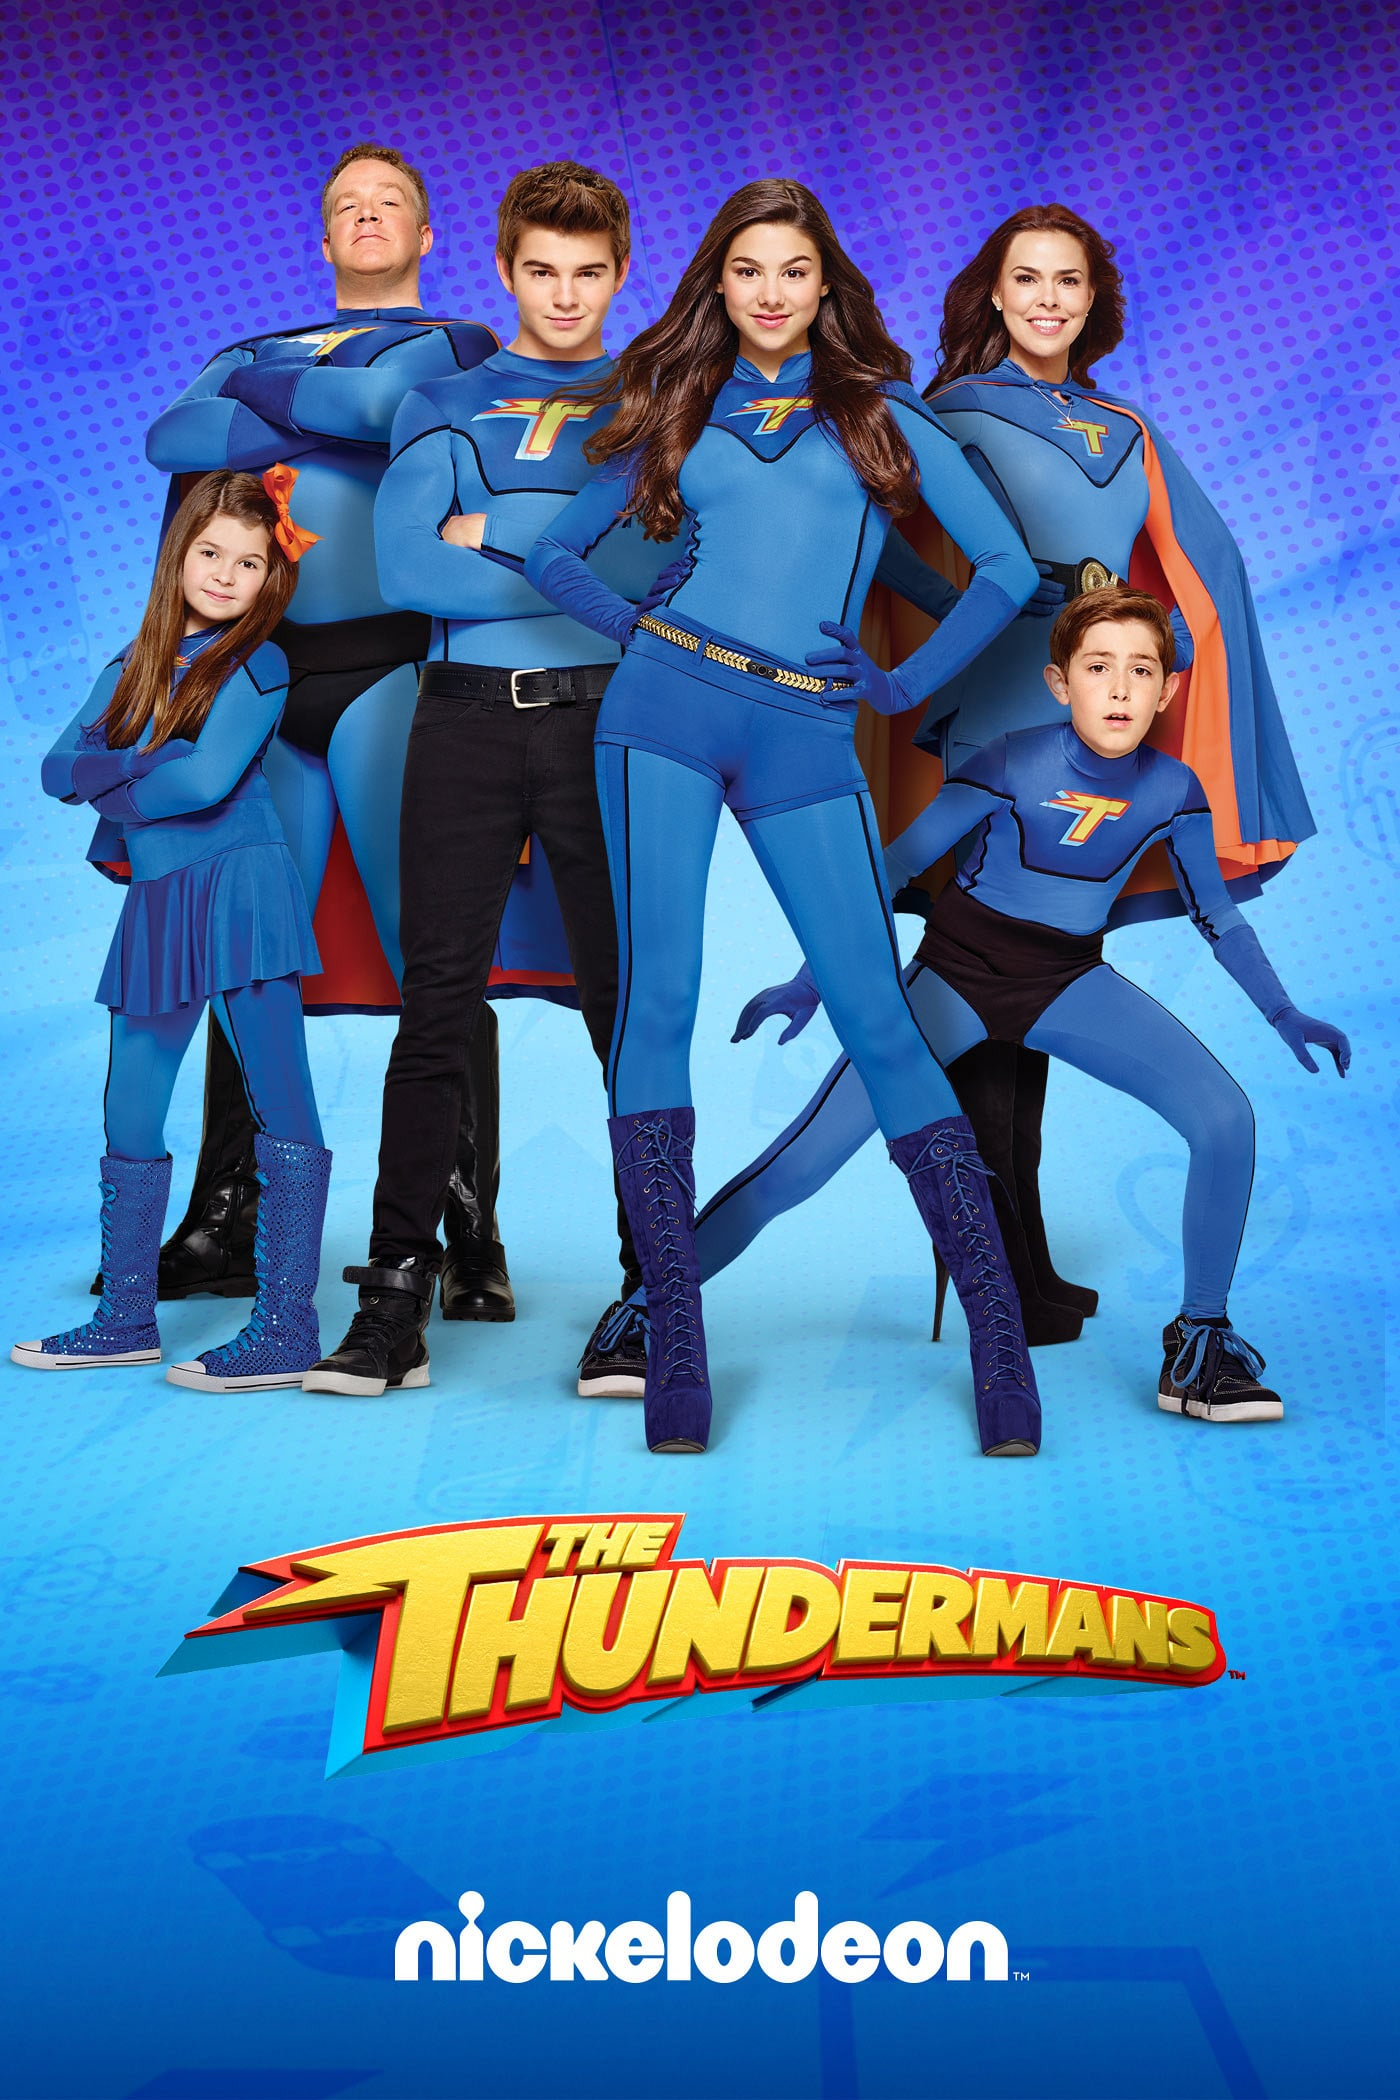 Los Thundermans' />